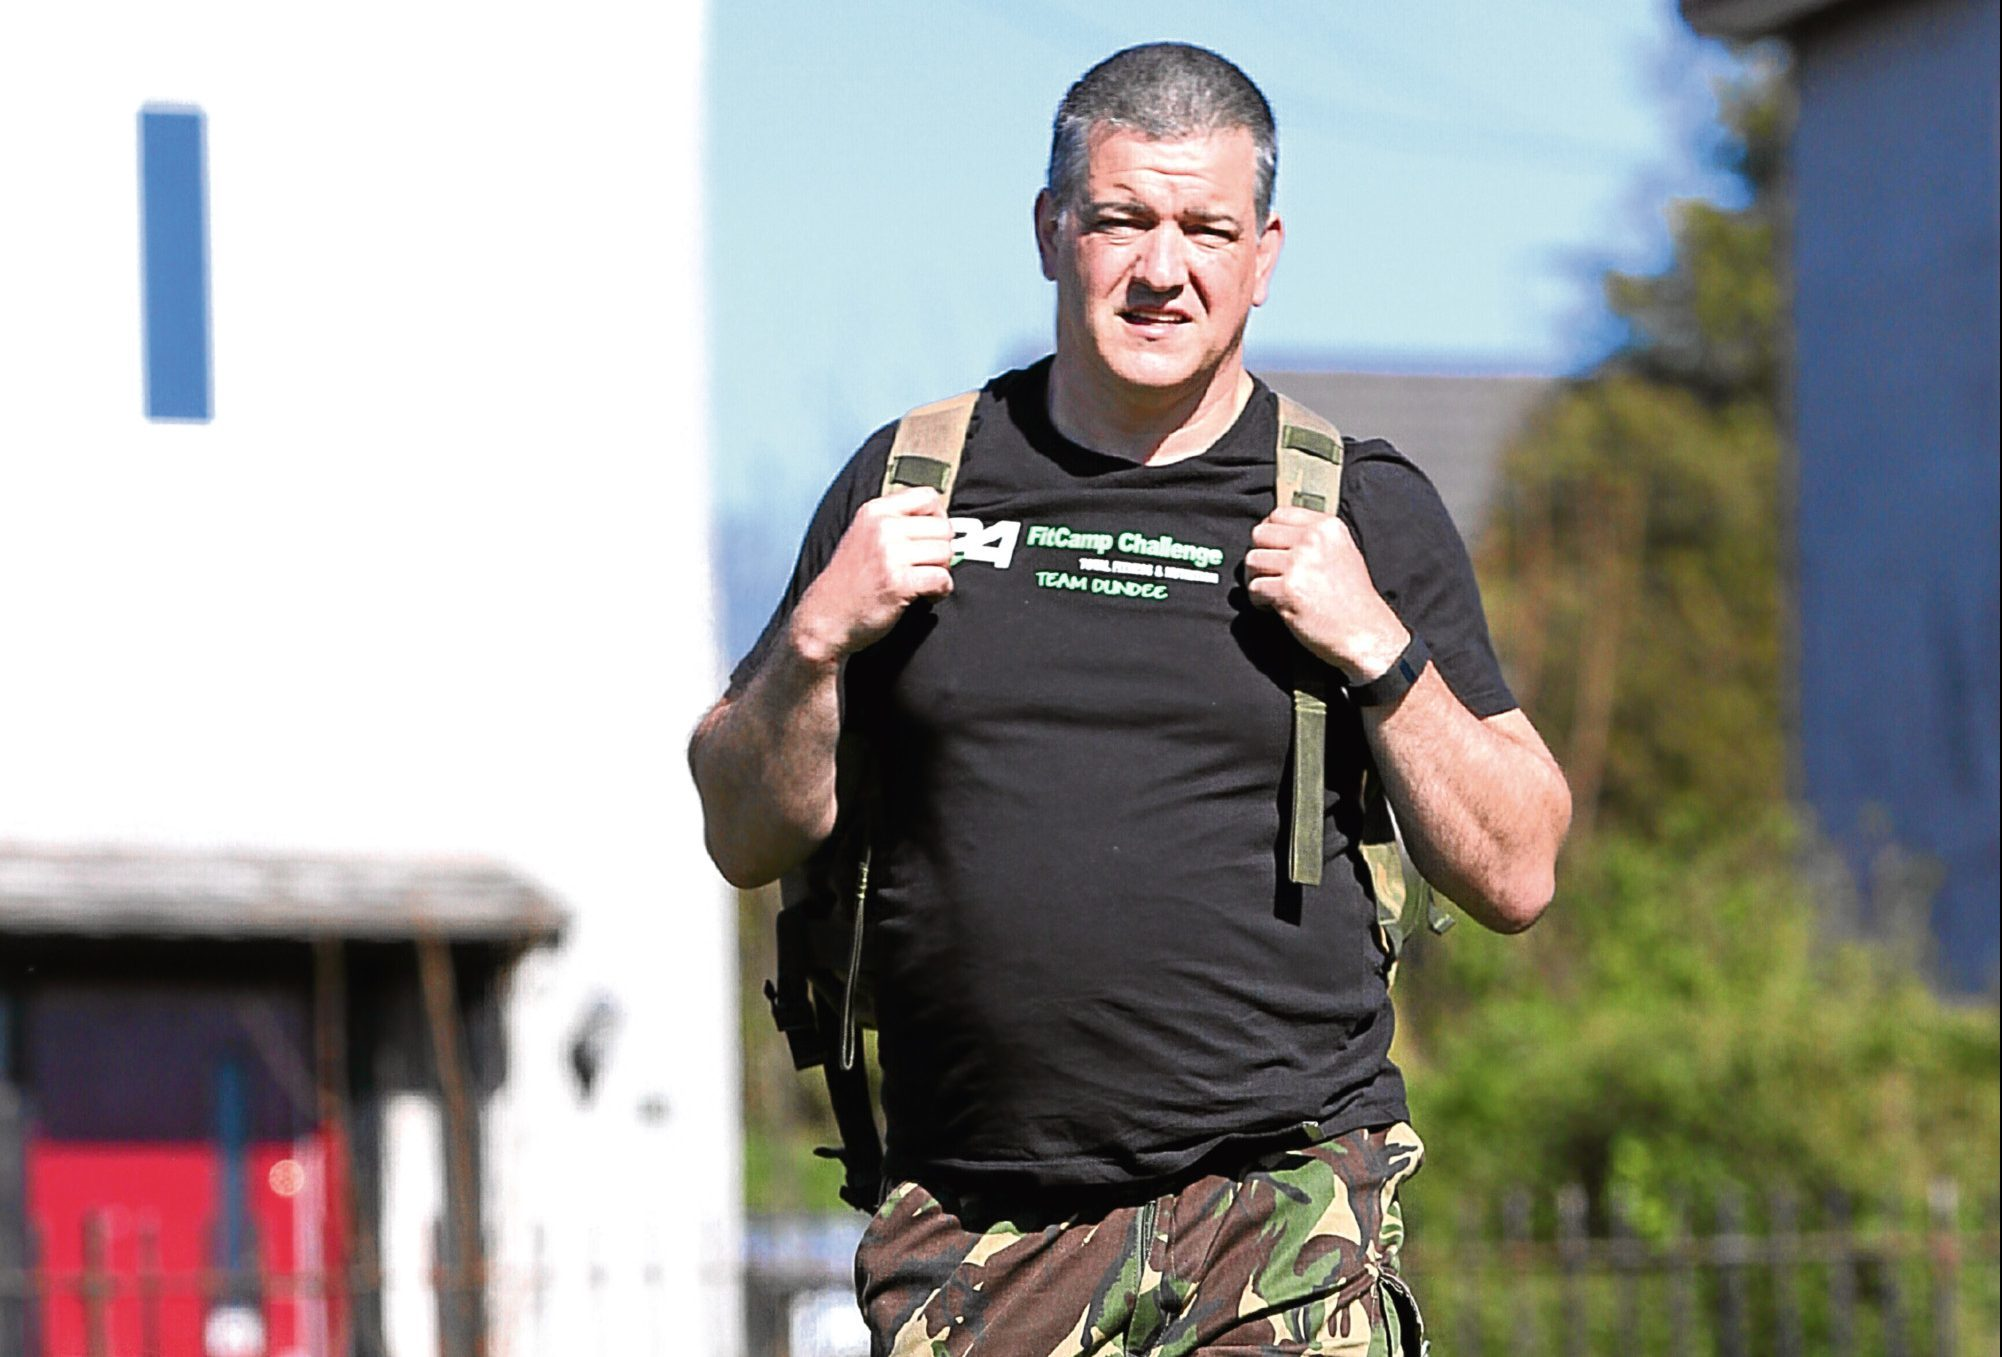 Ian Davidson, 54, out training near his home in Dryburgh Cresent, Dundee